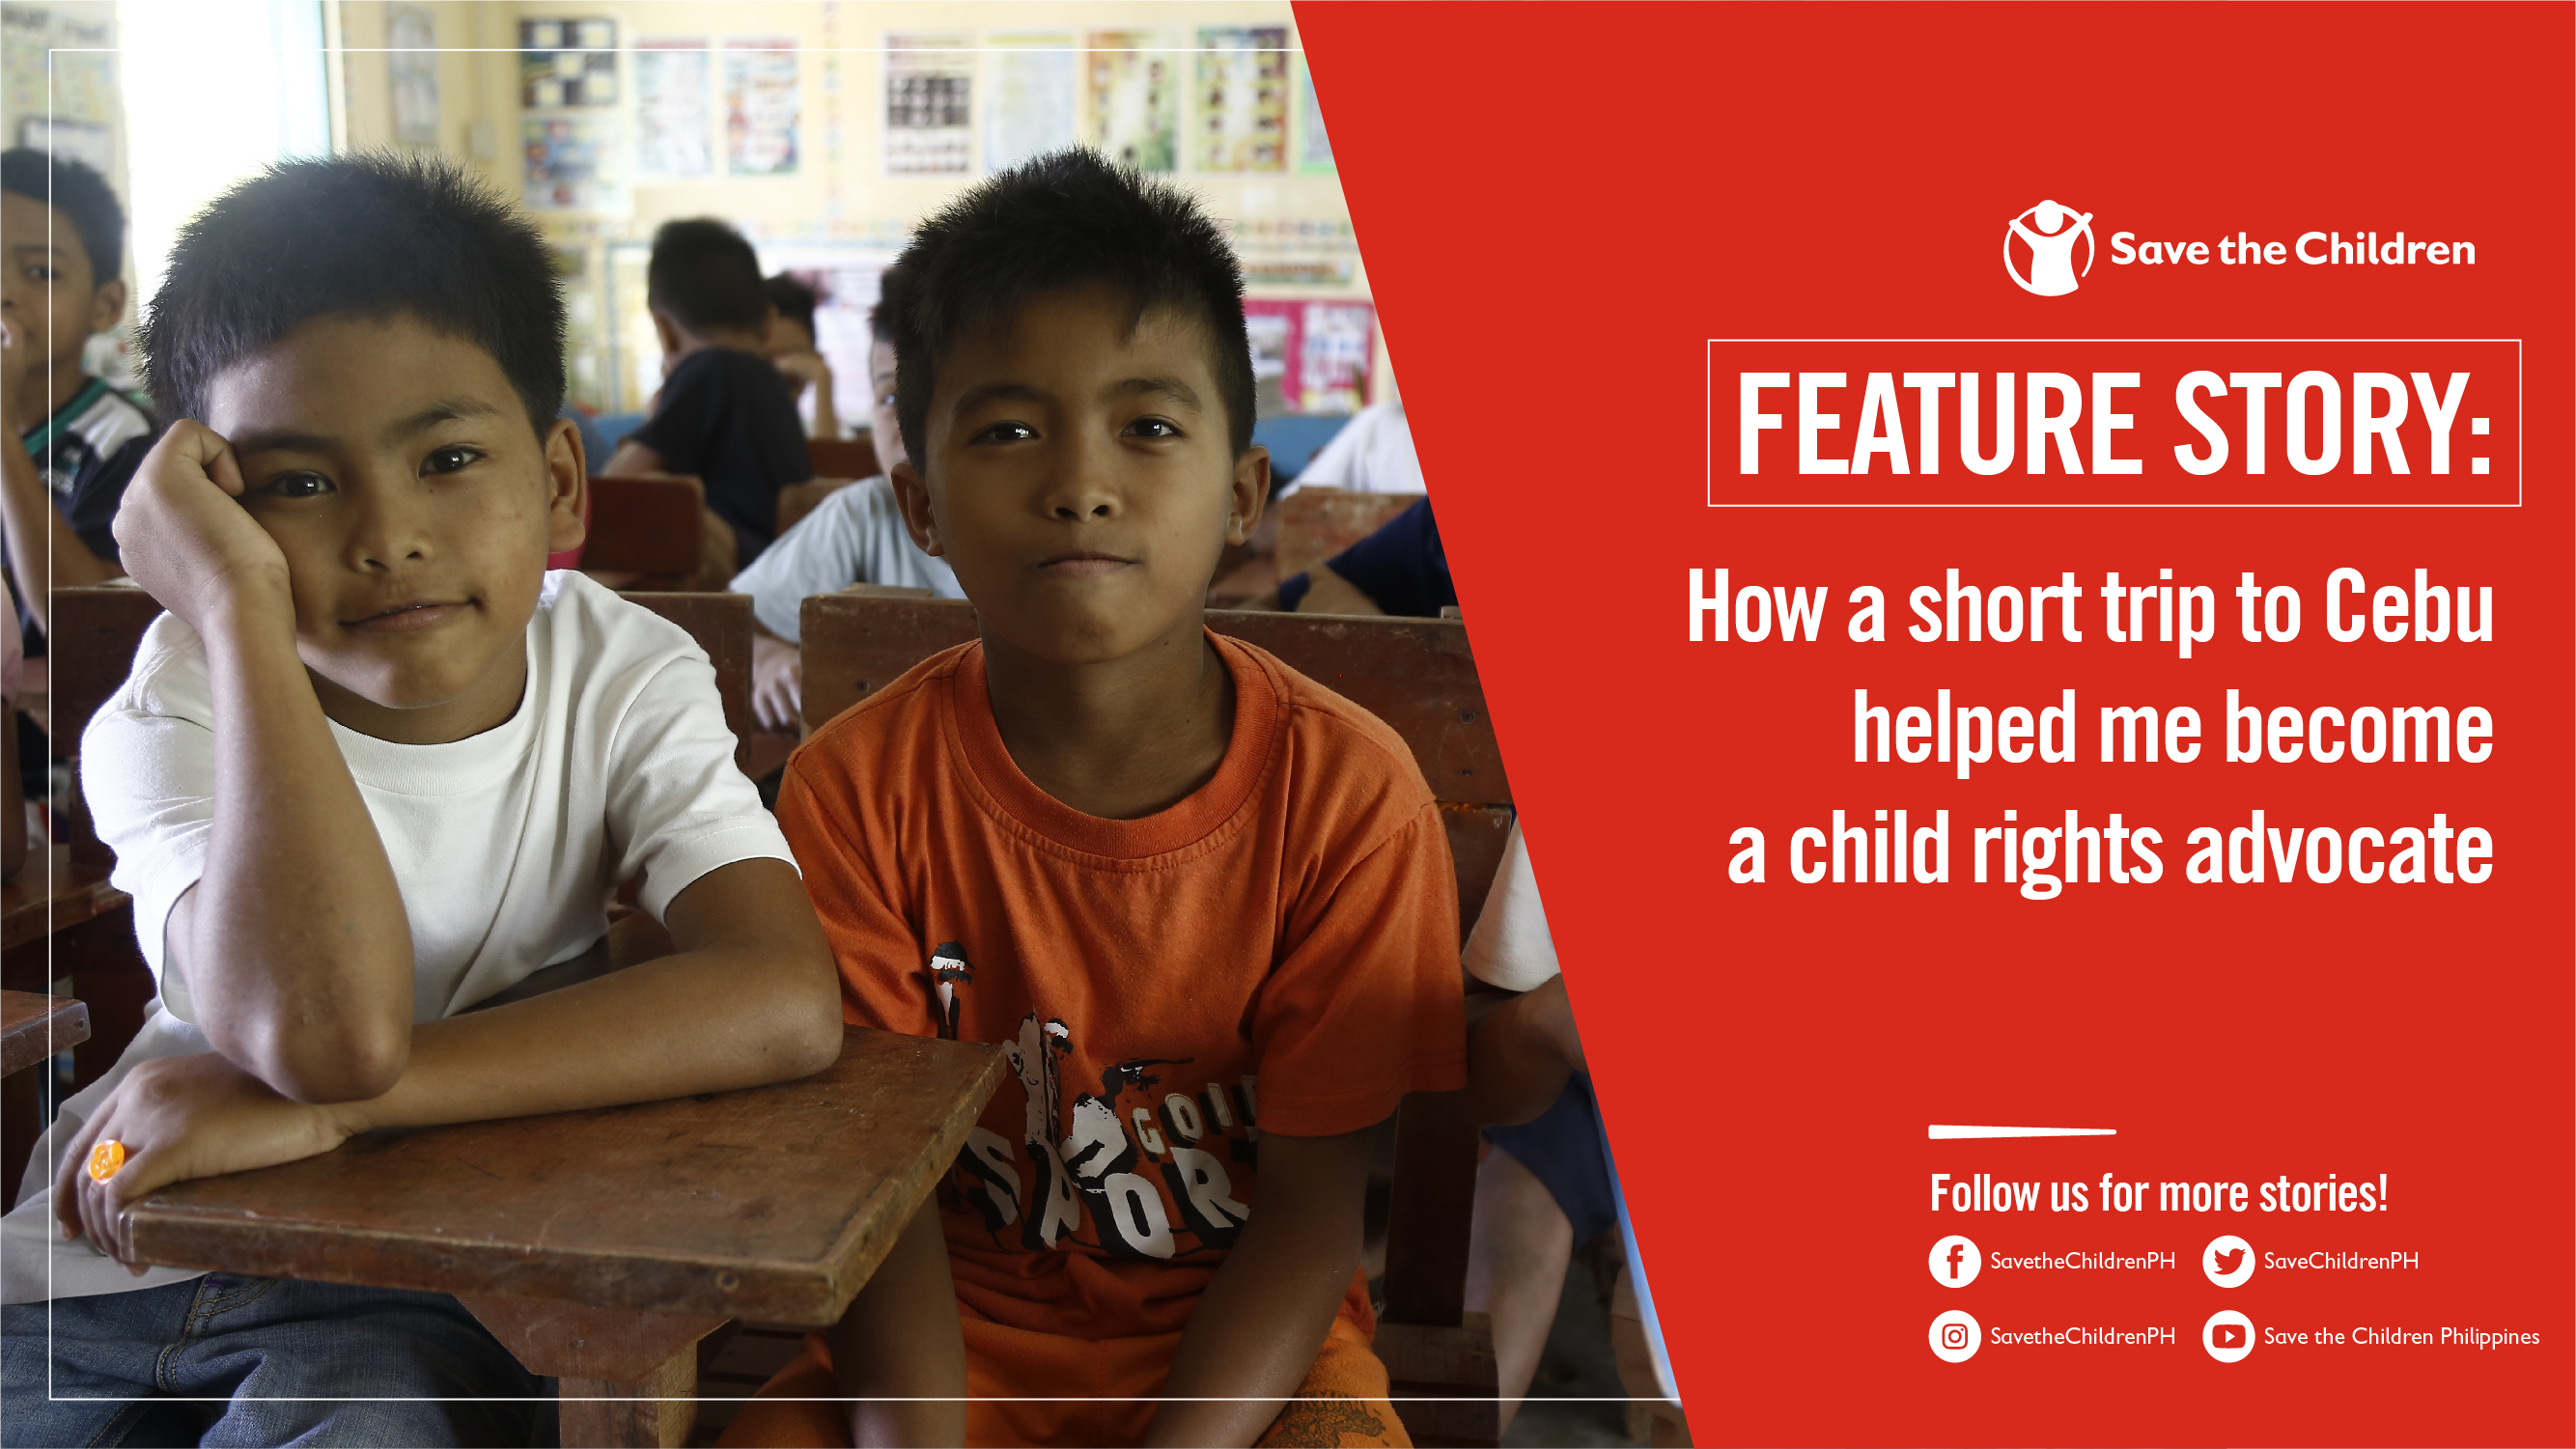 How a short trip to Cebu helped me become a child rights advocate